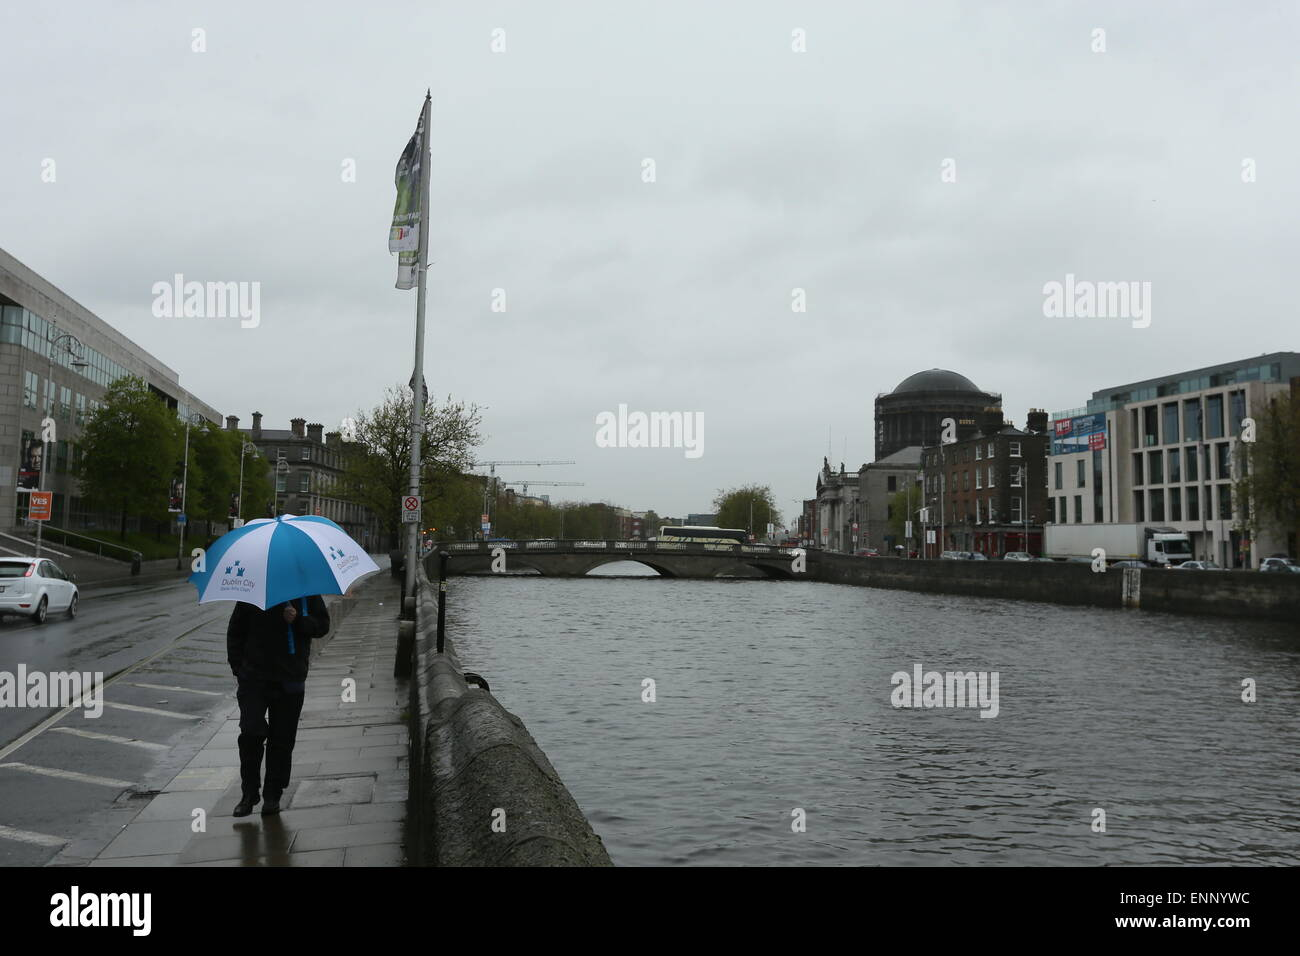 A man holding an umbrella walks along the Quays of the River Liffey. Image from Dublin city centre during a period - Stock Image